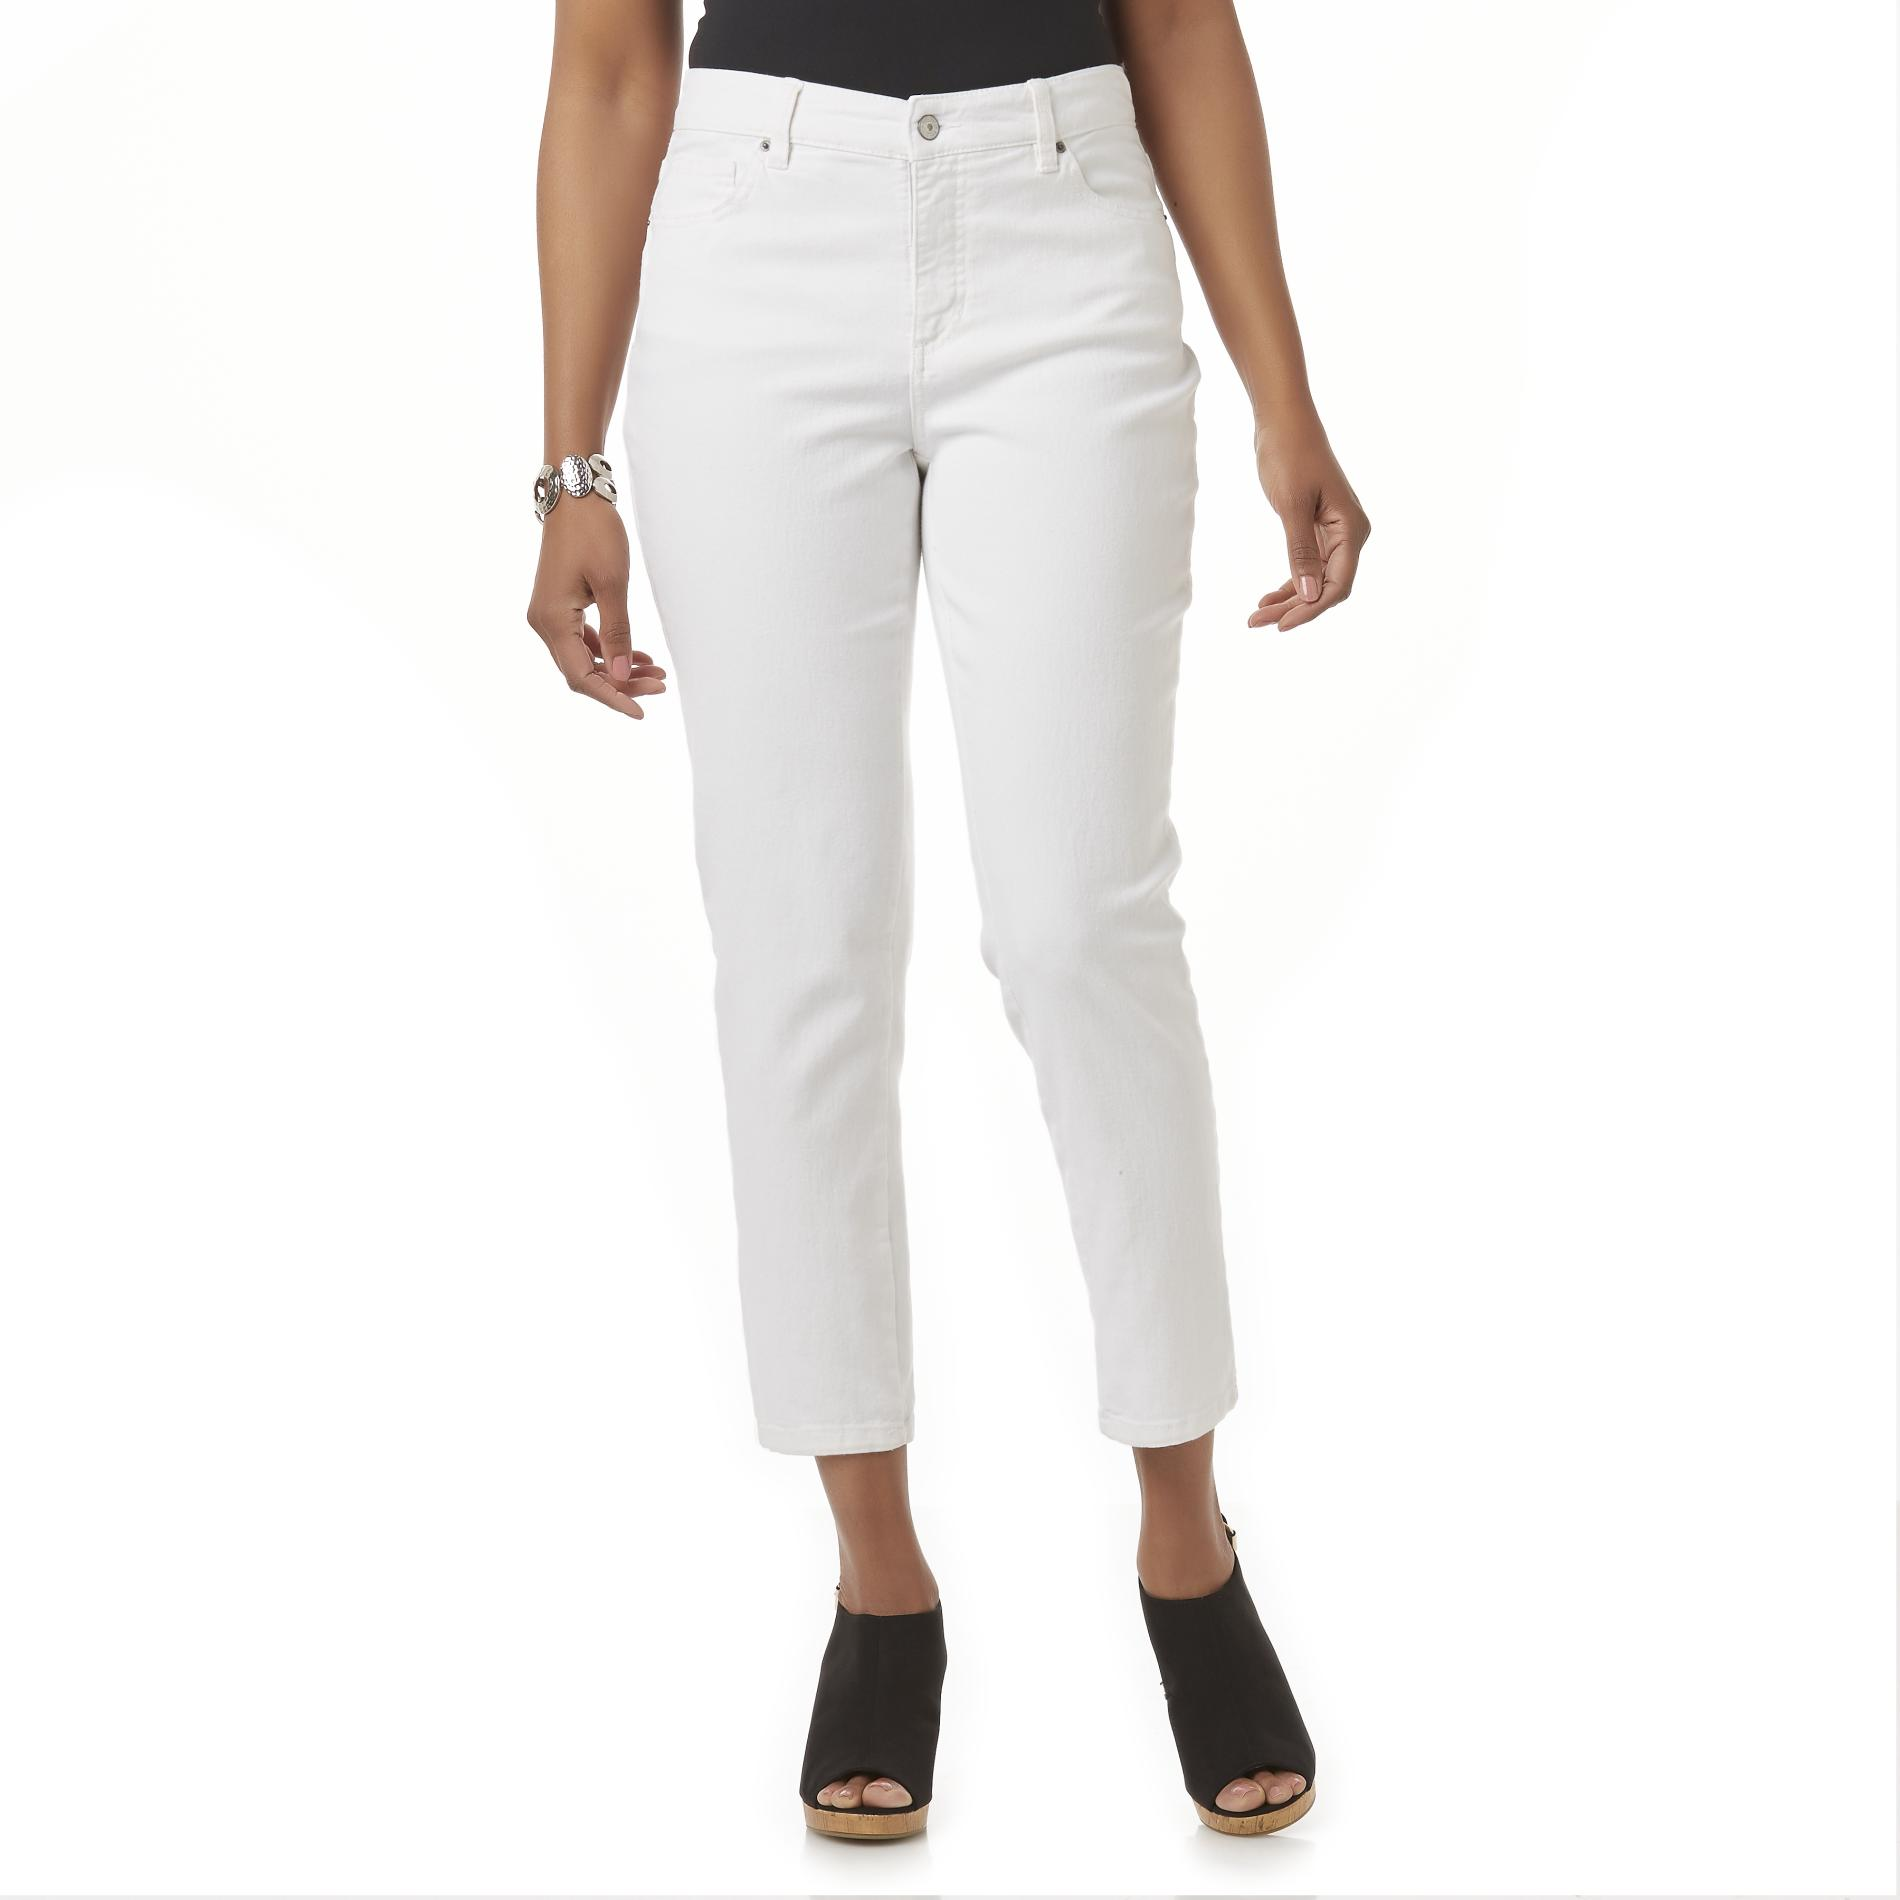 Basic Editions Women's Straight Leg Ankle Jeans